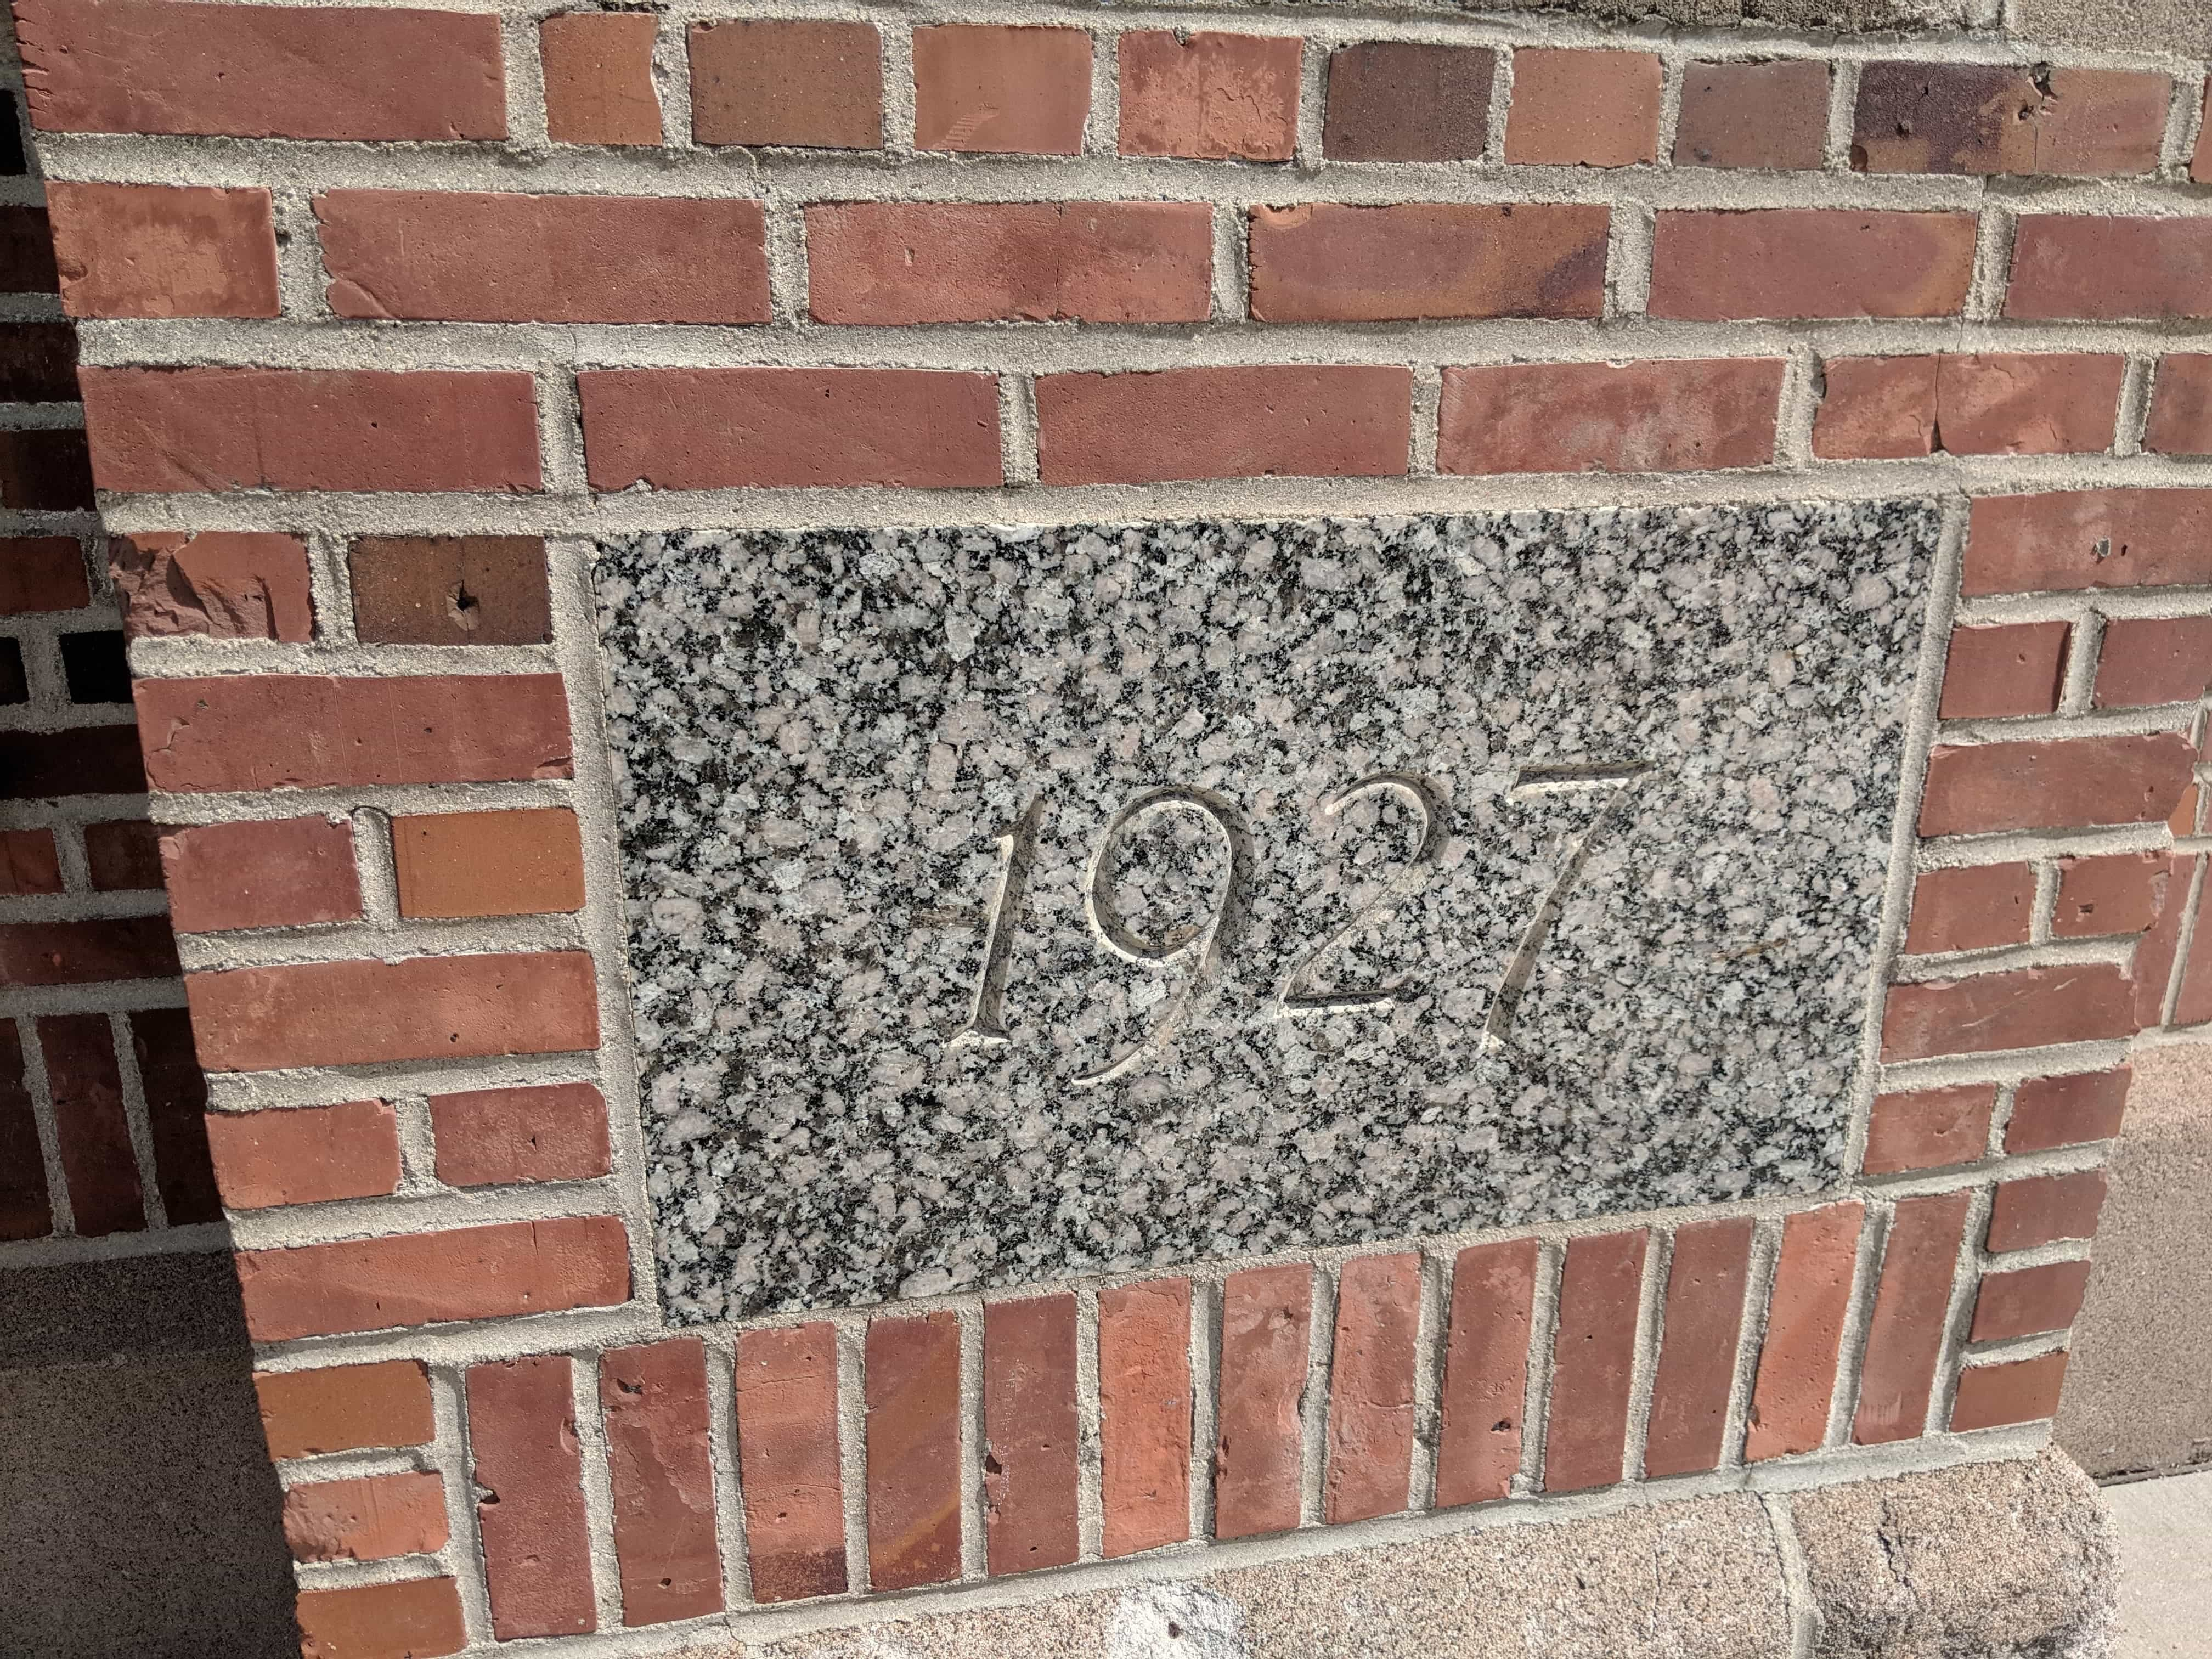 The cornerstone of the stadium dated 1927. The cornerstone is located on the north-western side of the building.